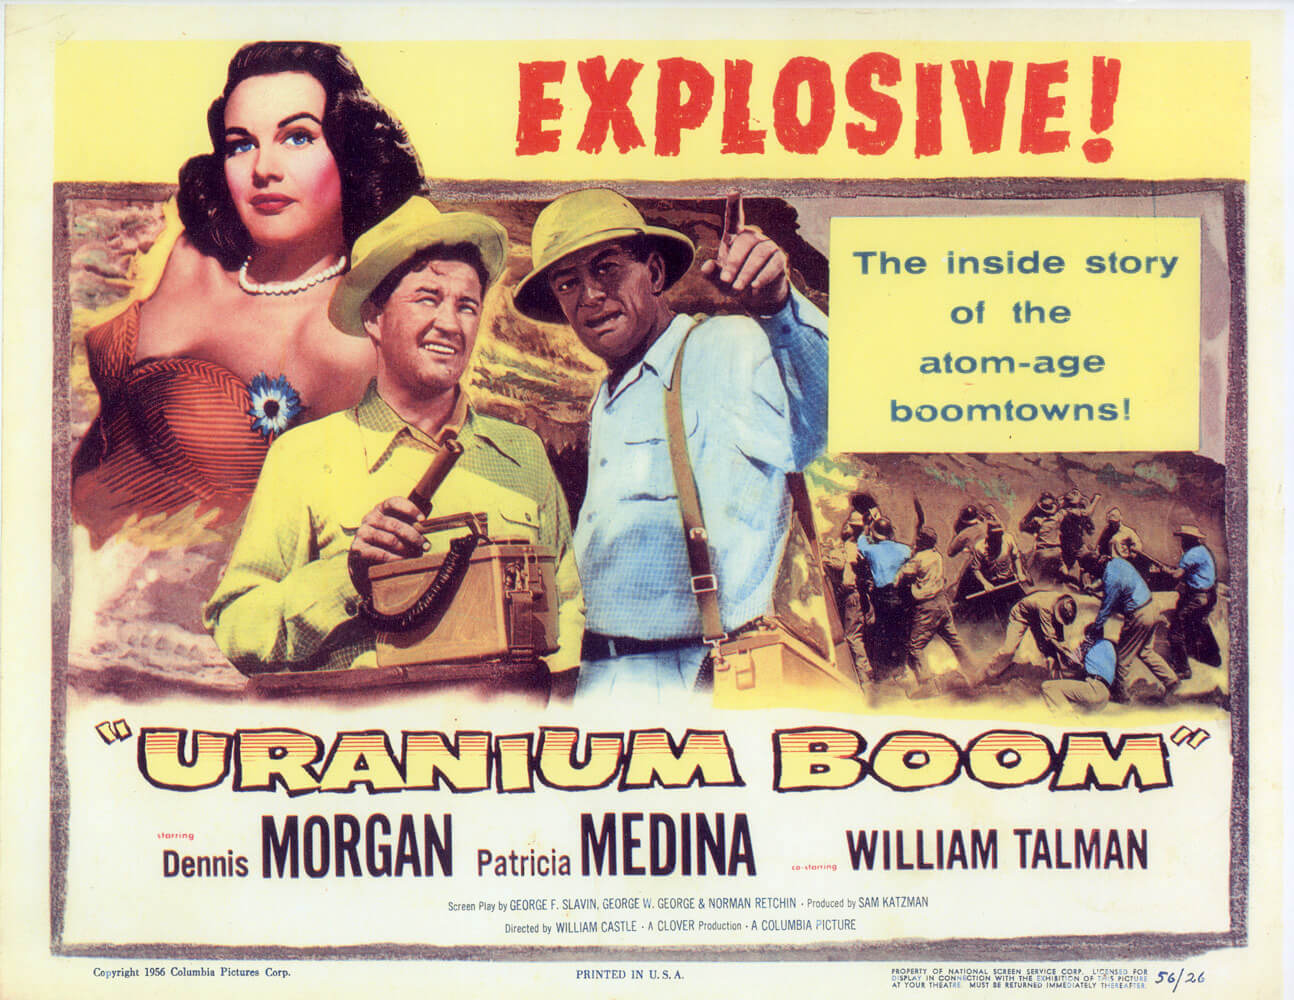 The Uranium Boom caused such an uproar that a feature film was even dedicated to the story. Lloyd Files Research Library.